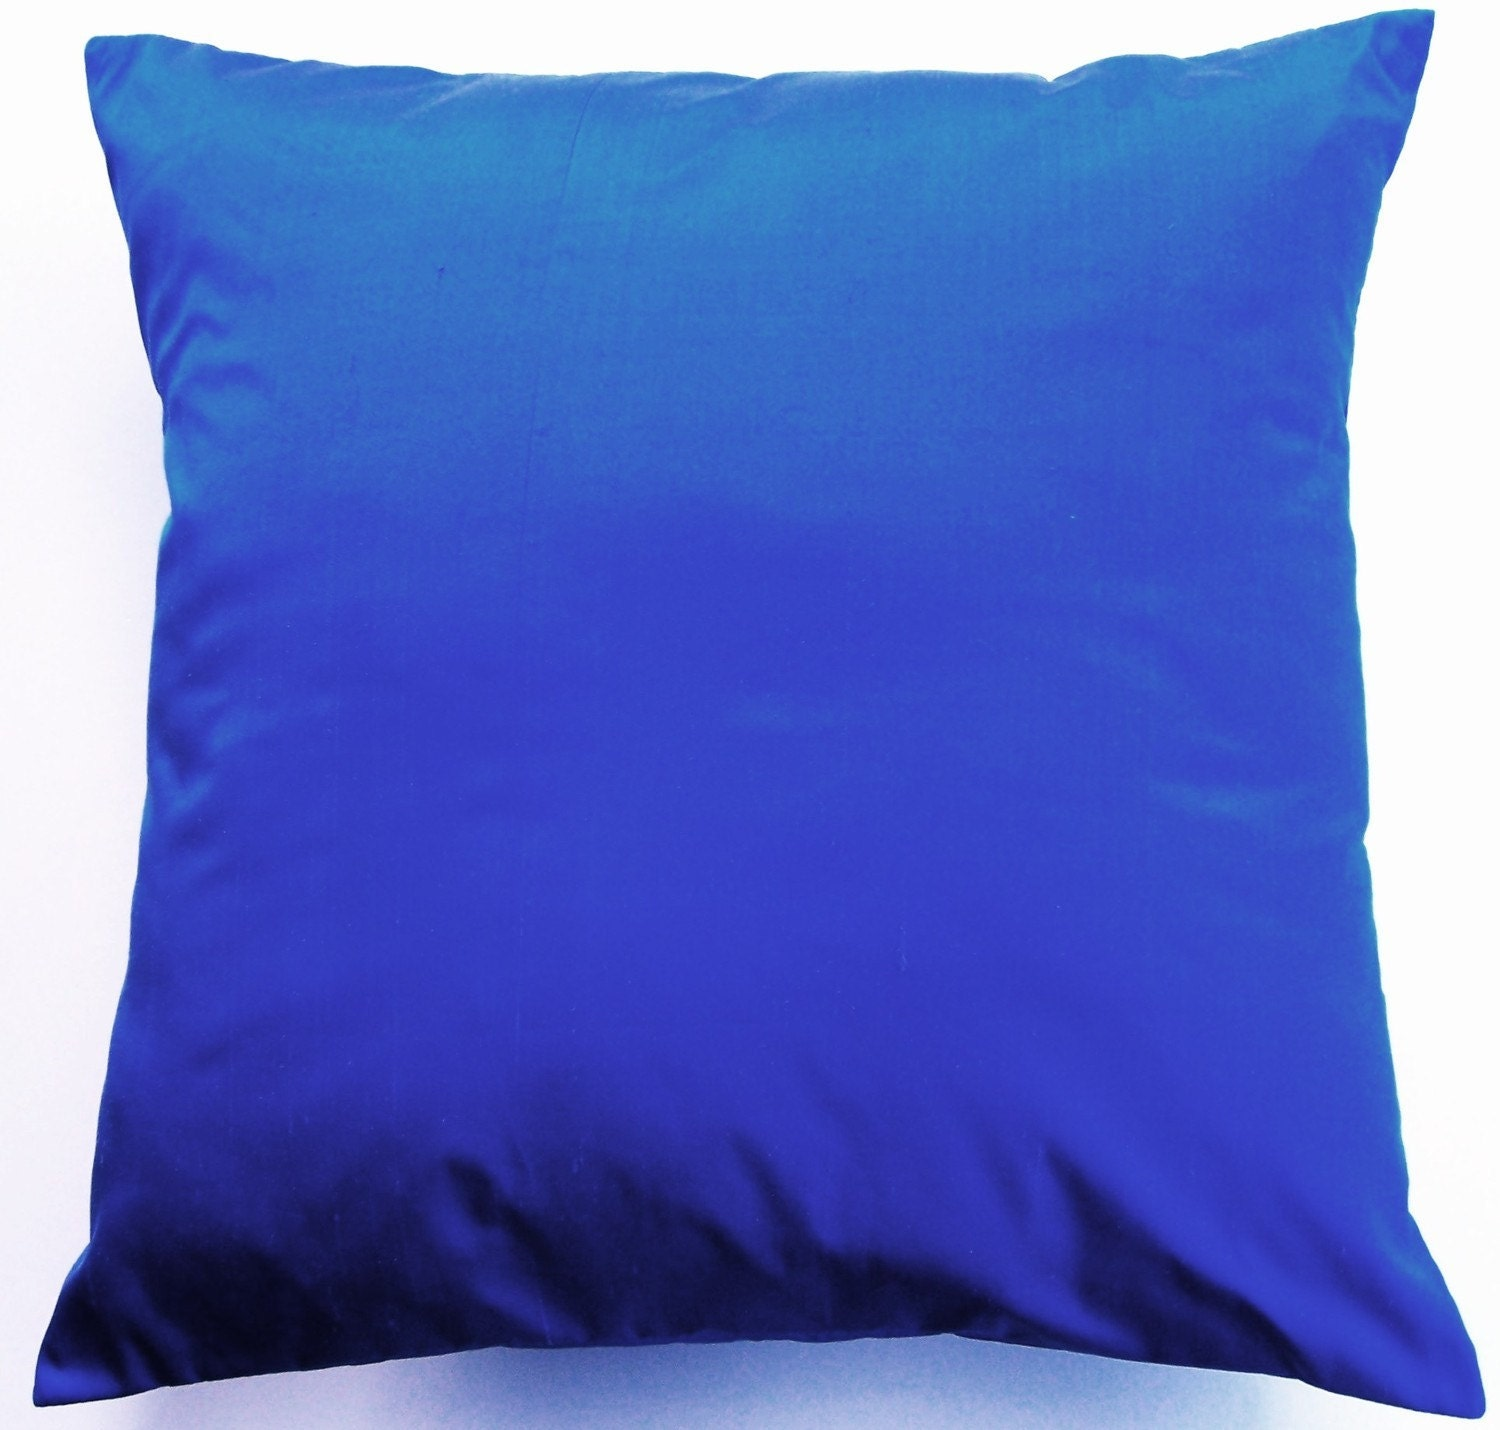 Blue Pillow Cover Silk Cobalt Blue Throw Pillow by sassypillows